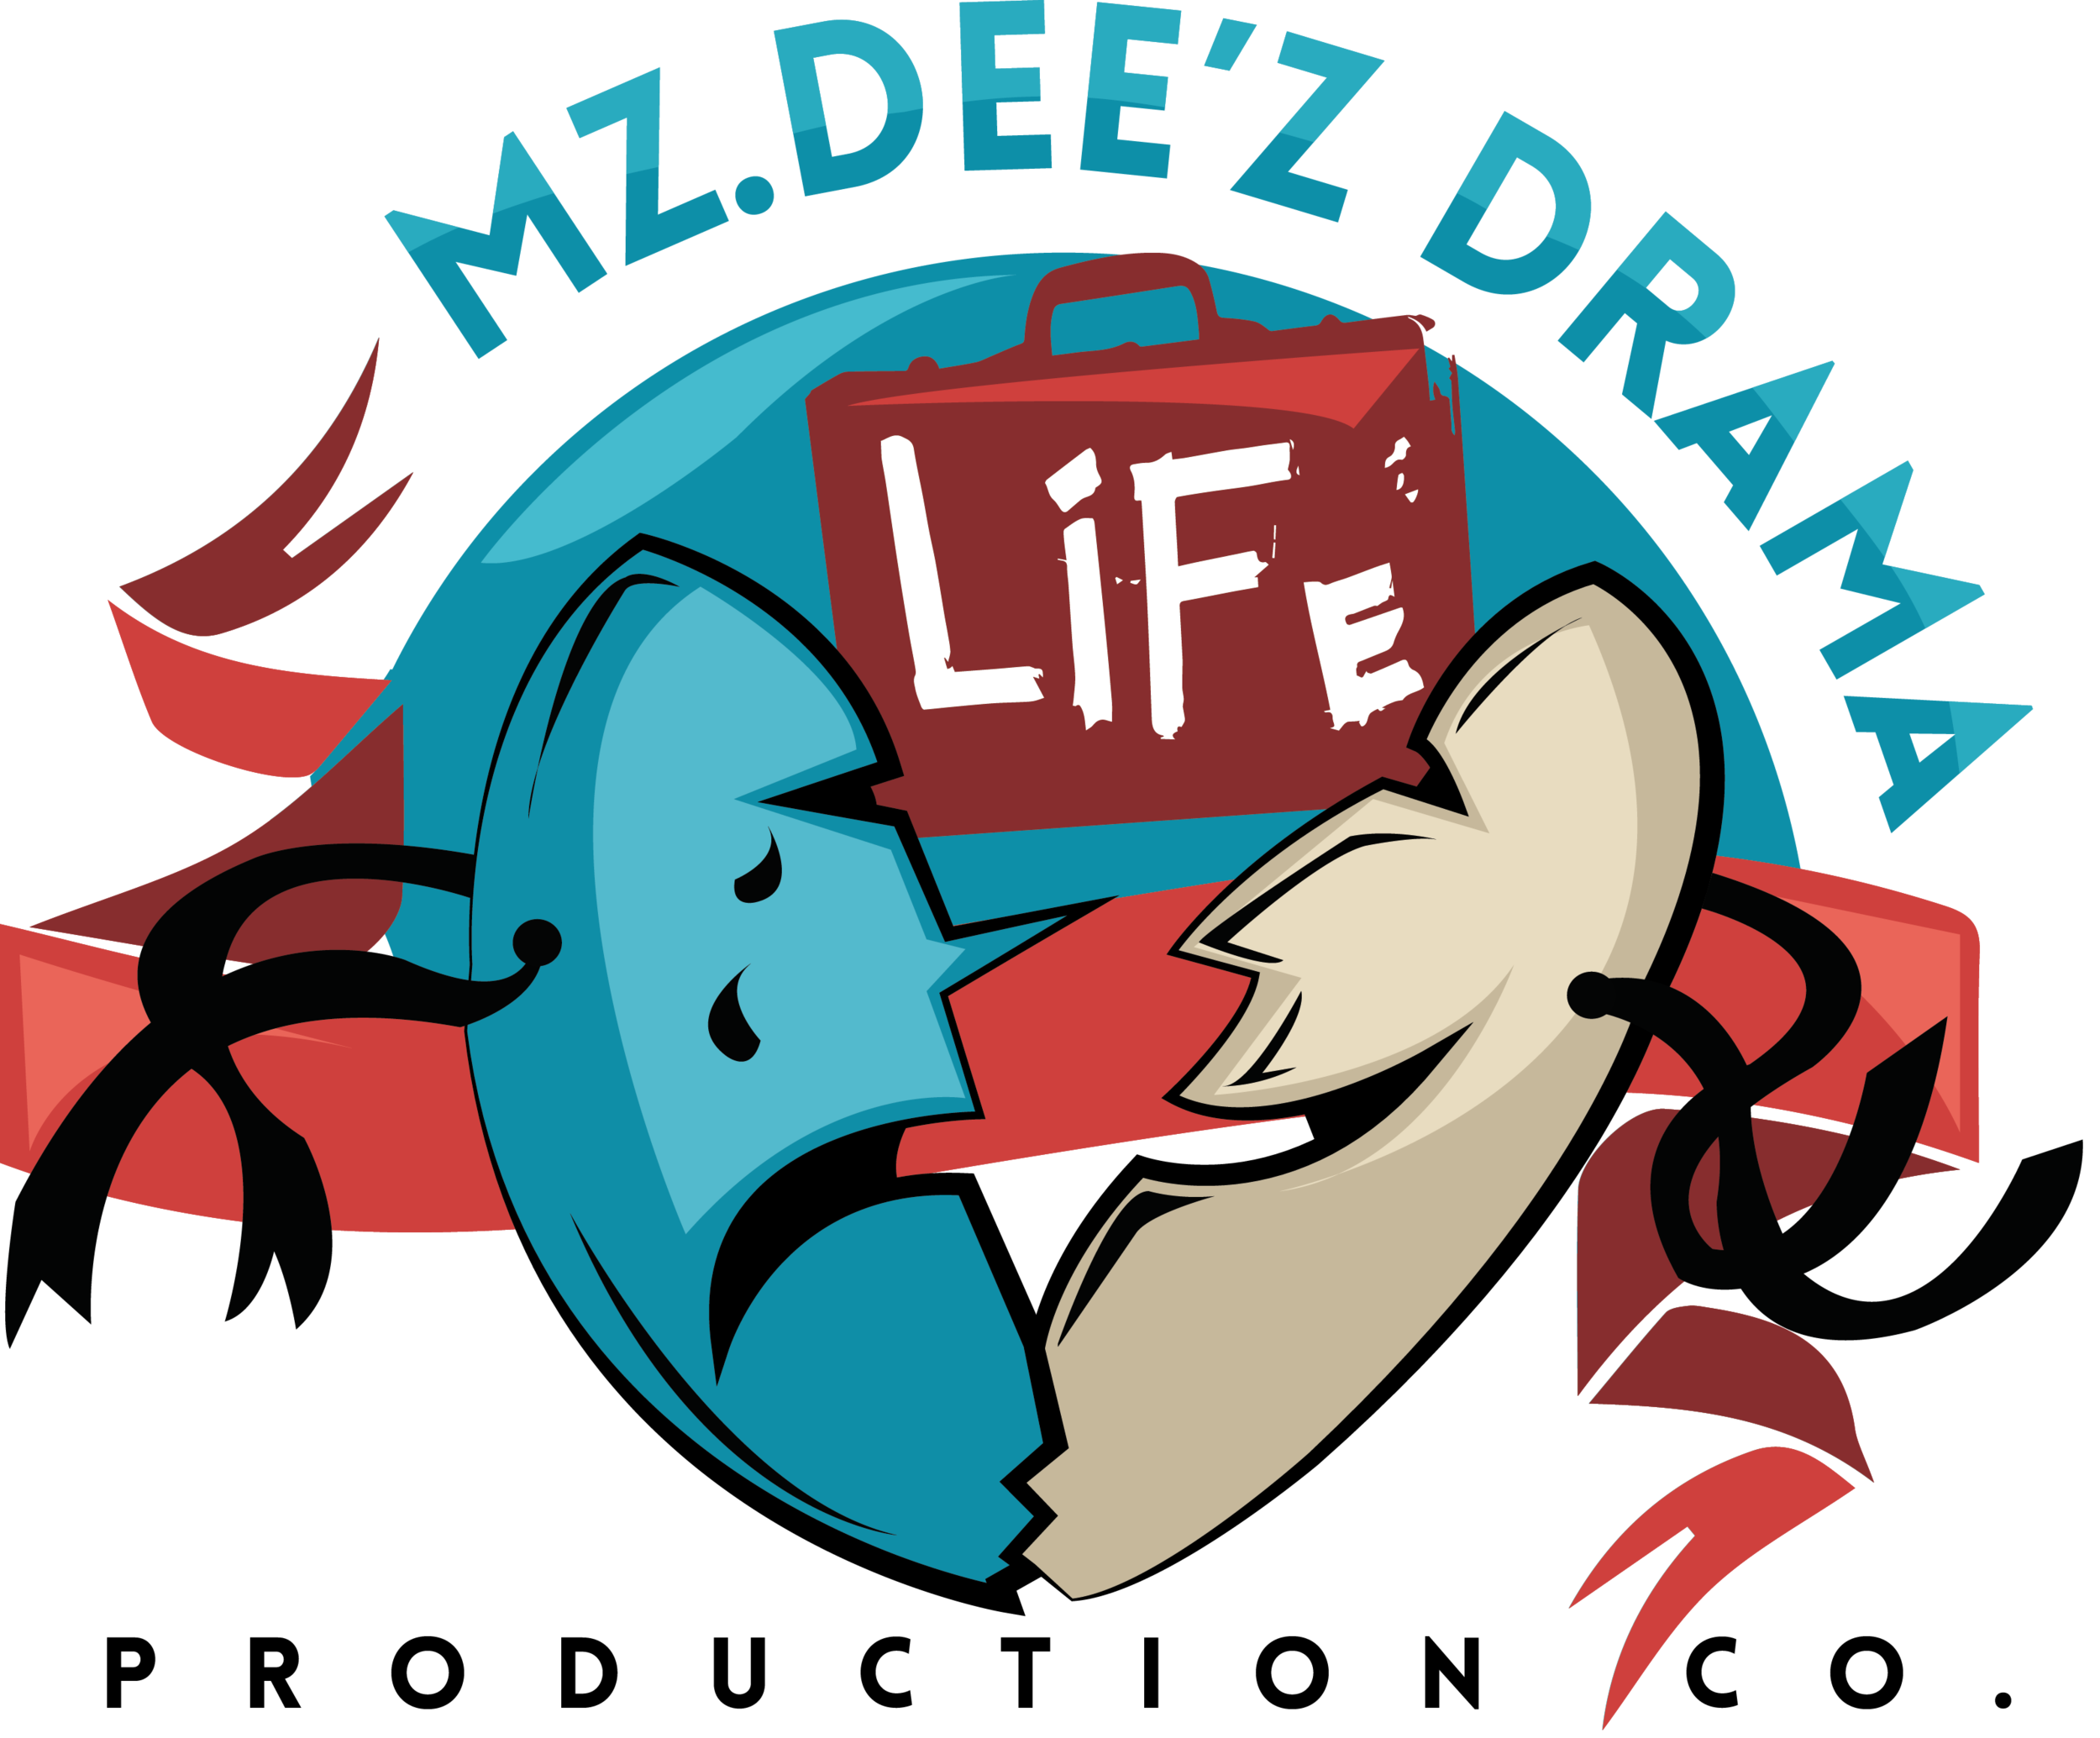 Mz deez productions logo. Drama clipart drama production clipart freeuse library